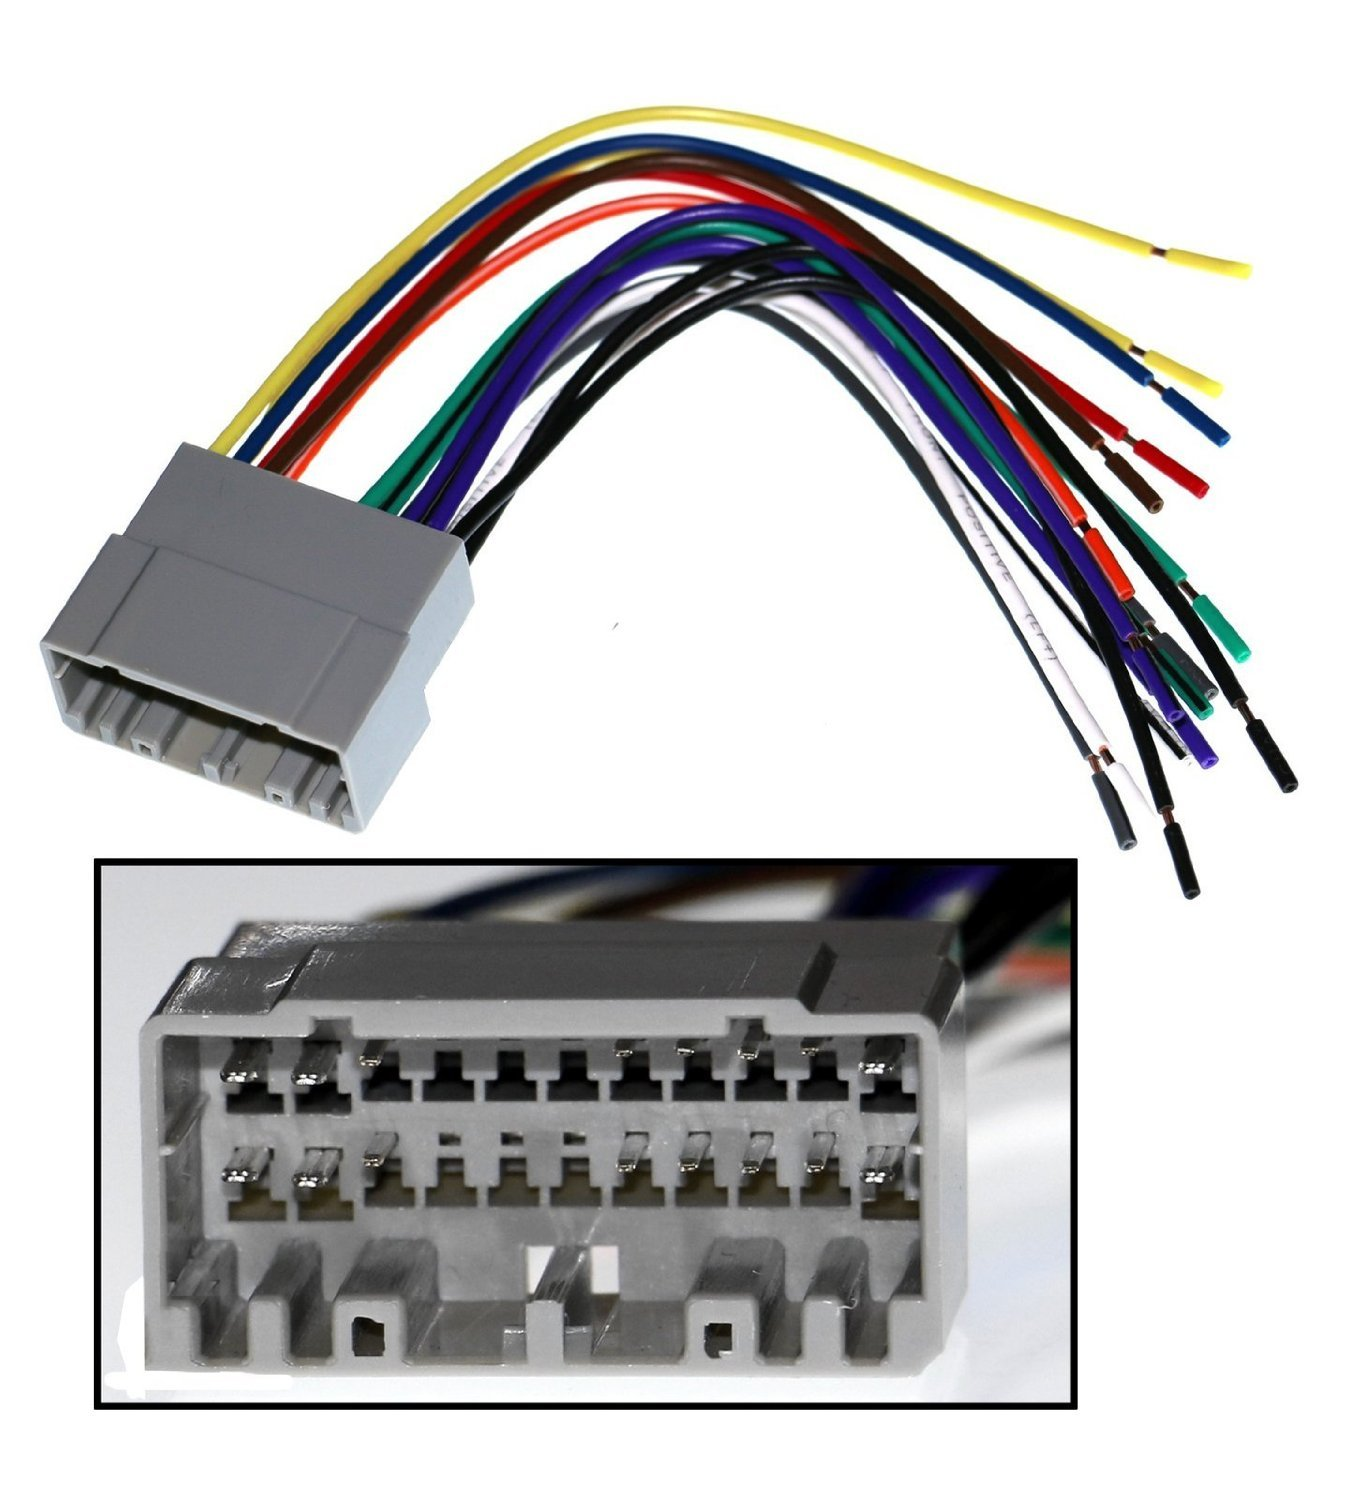 710Q%2BKgavVL._SL1500_ amazon com pioneer car stereo reciever dash install mounting radio wire harness kits at gsmx.co